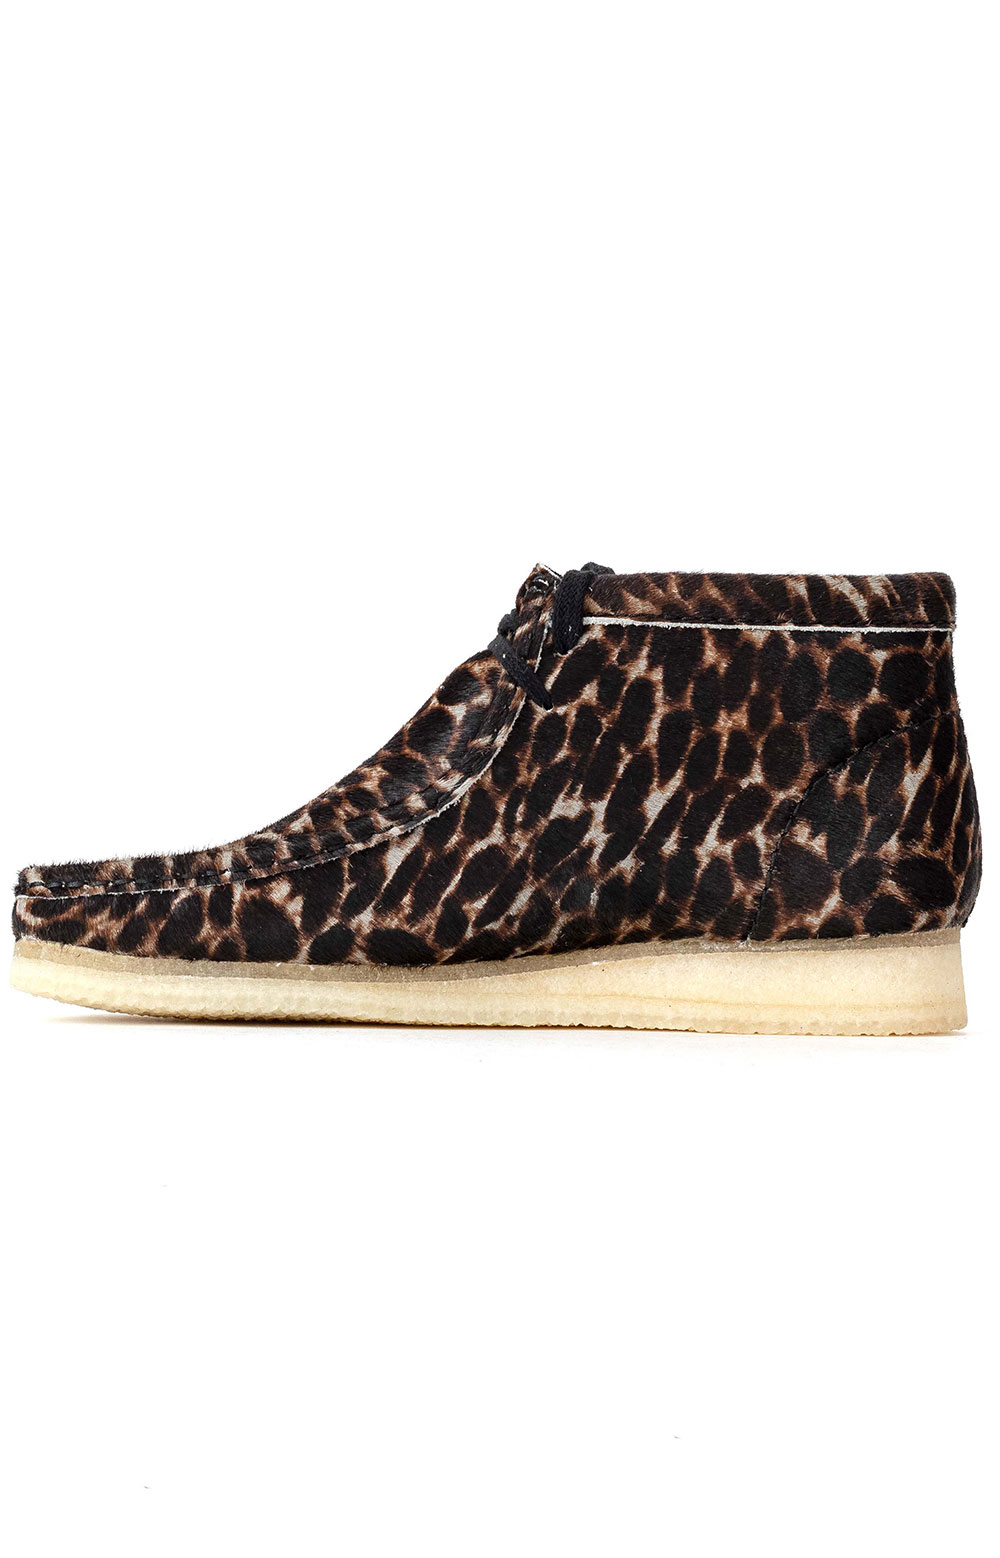 (26146759) Wallabee Boot - Black Animal Print 4